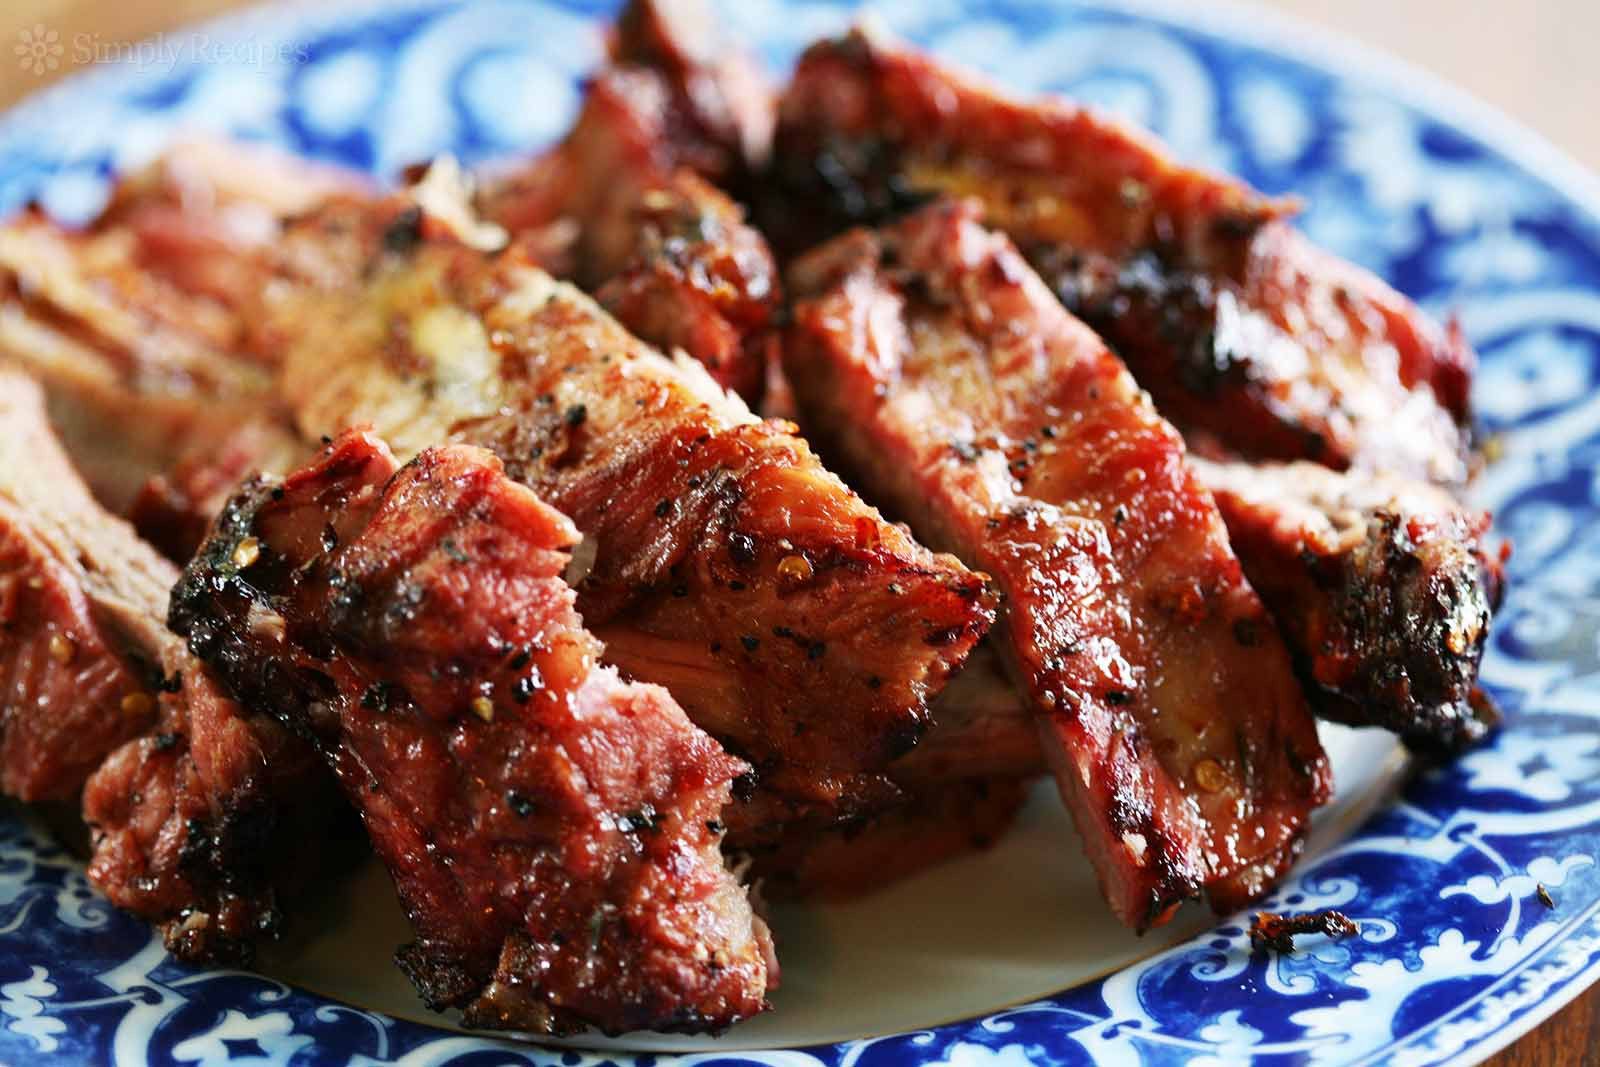 Grilled Pork Ribs Recipe  Grilled Spicy Citrus Ribs with Bourbon Glaze Recipe